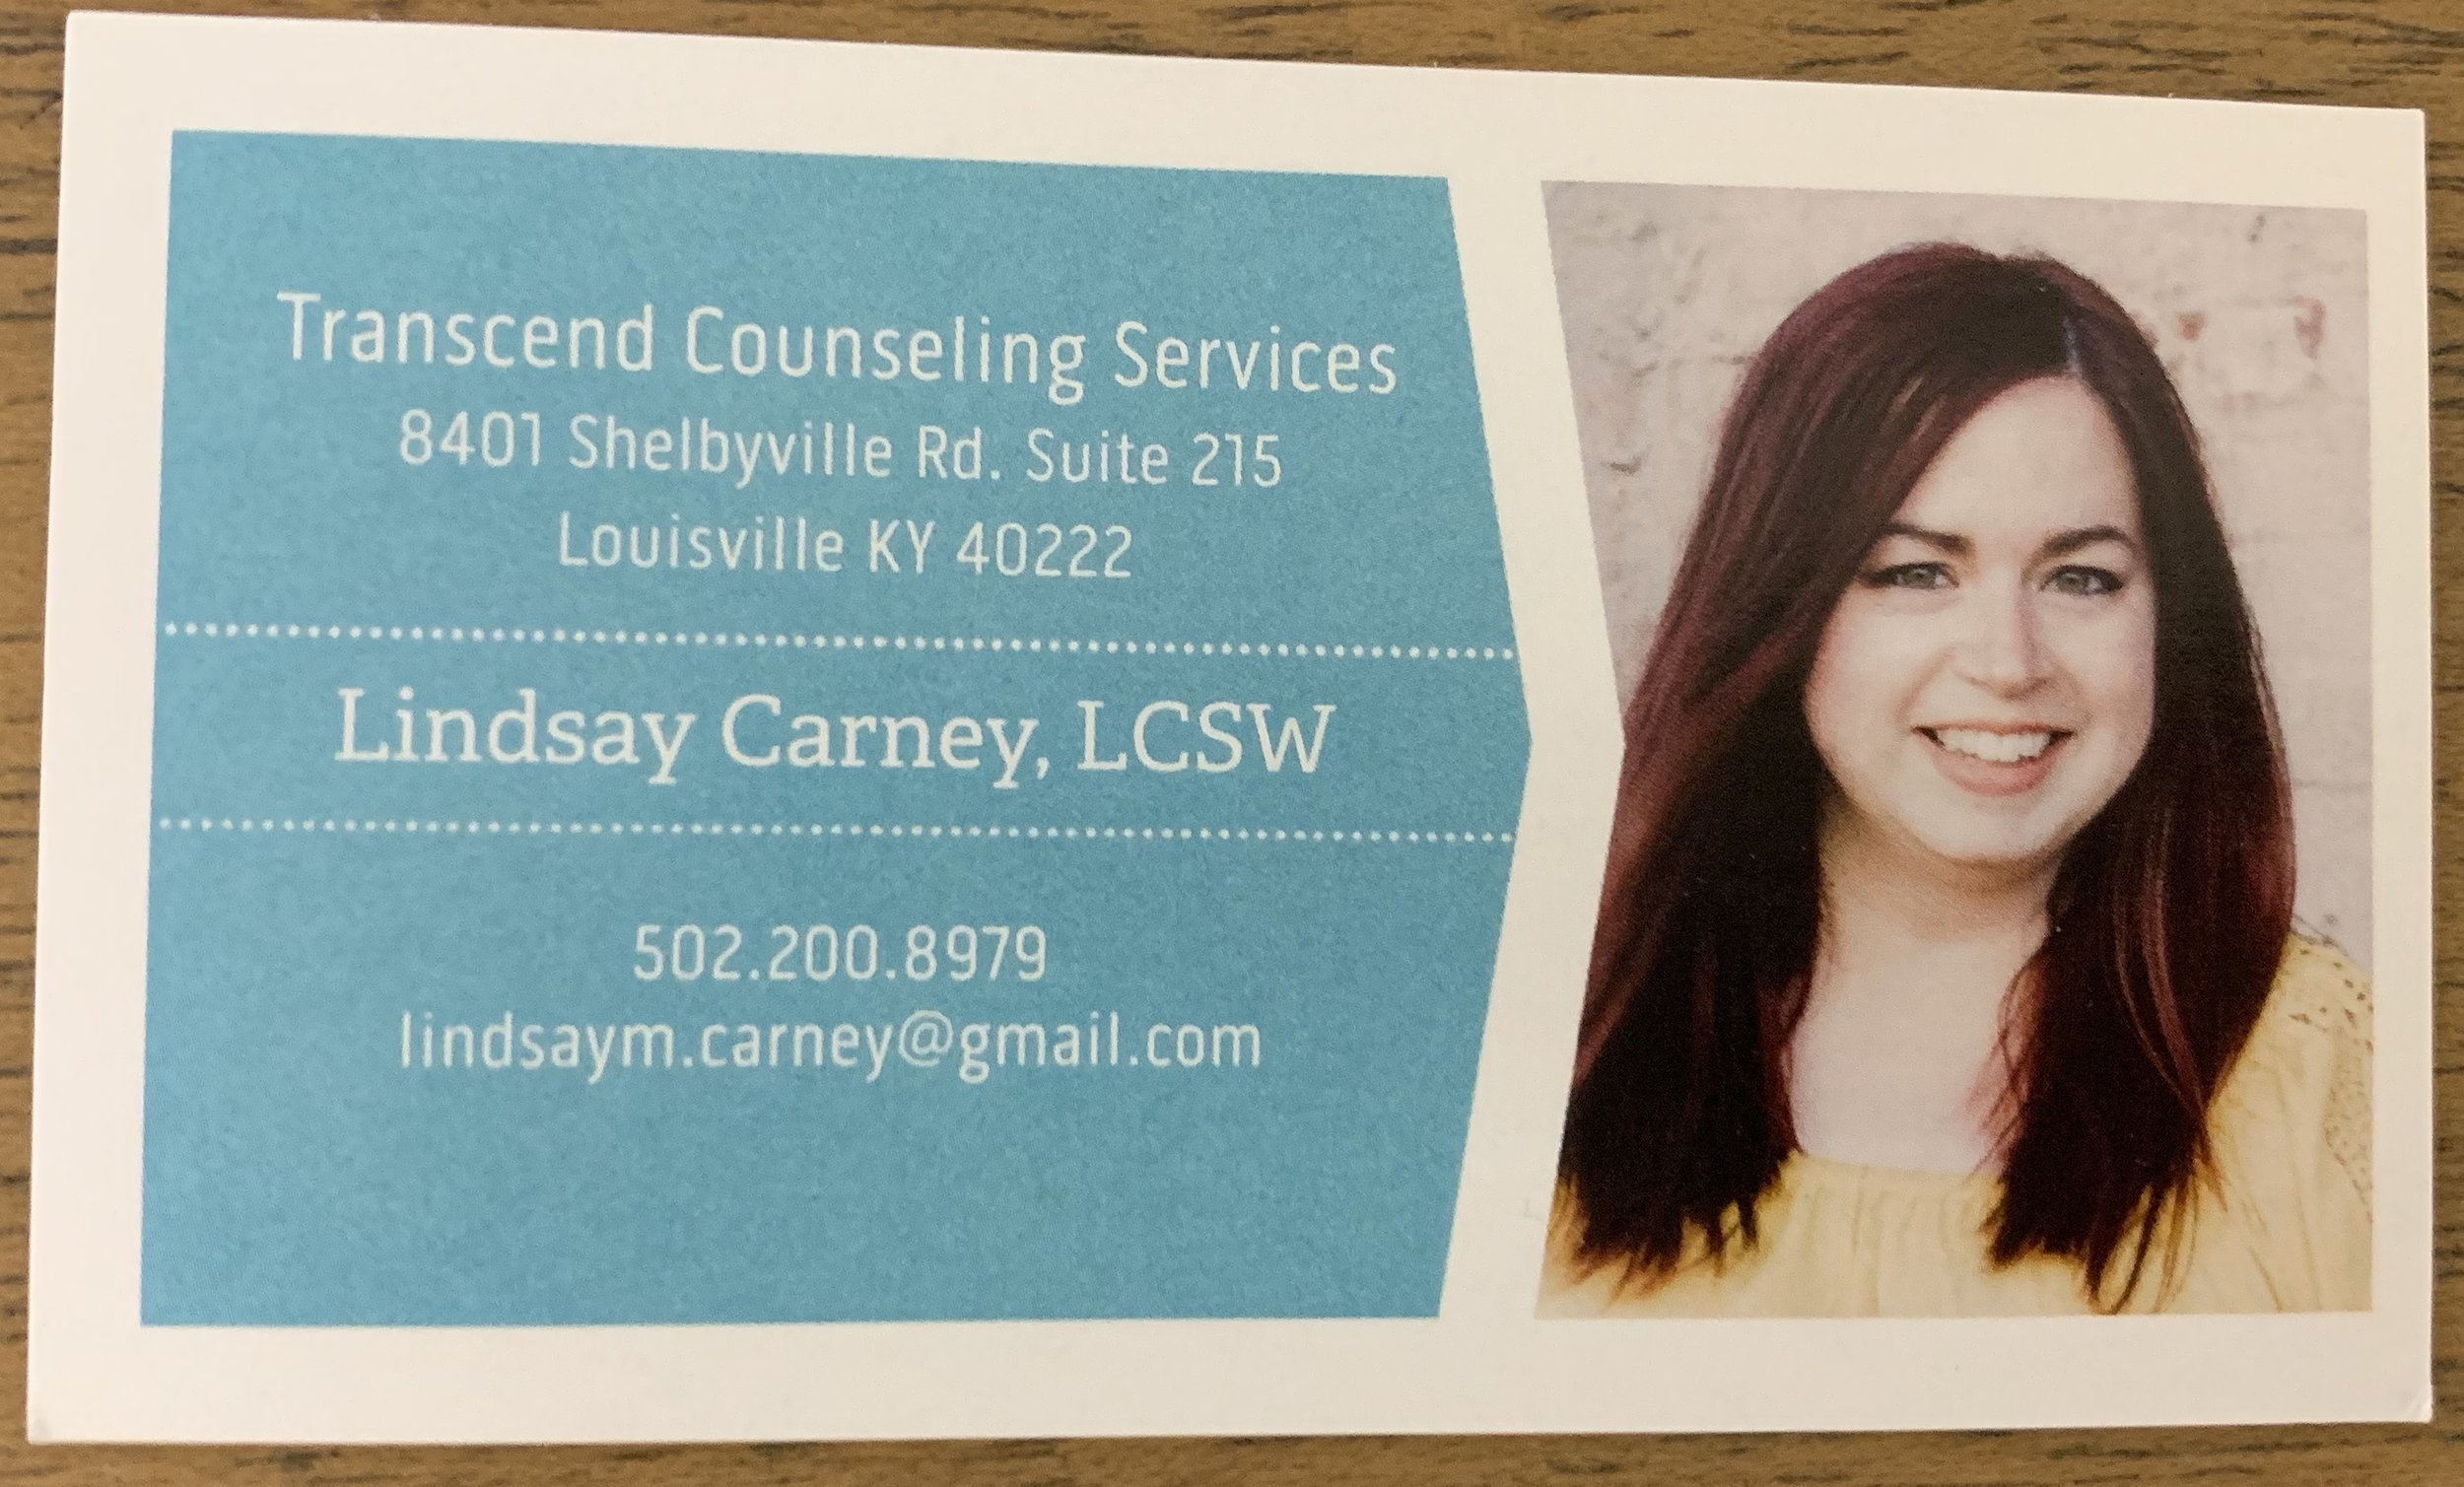 Transcend Counseling Services